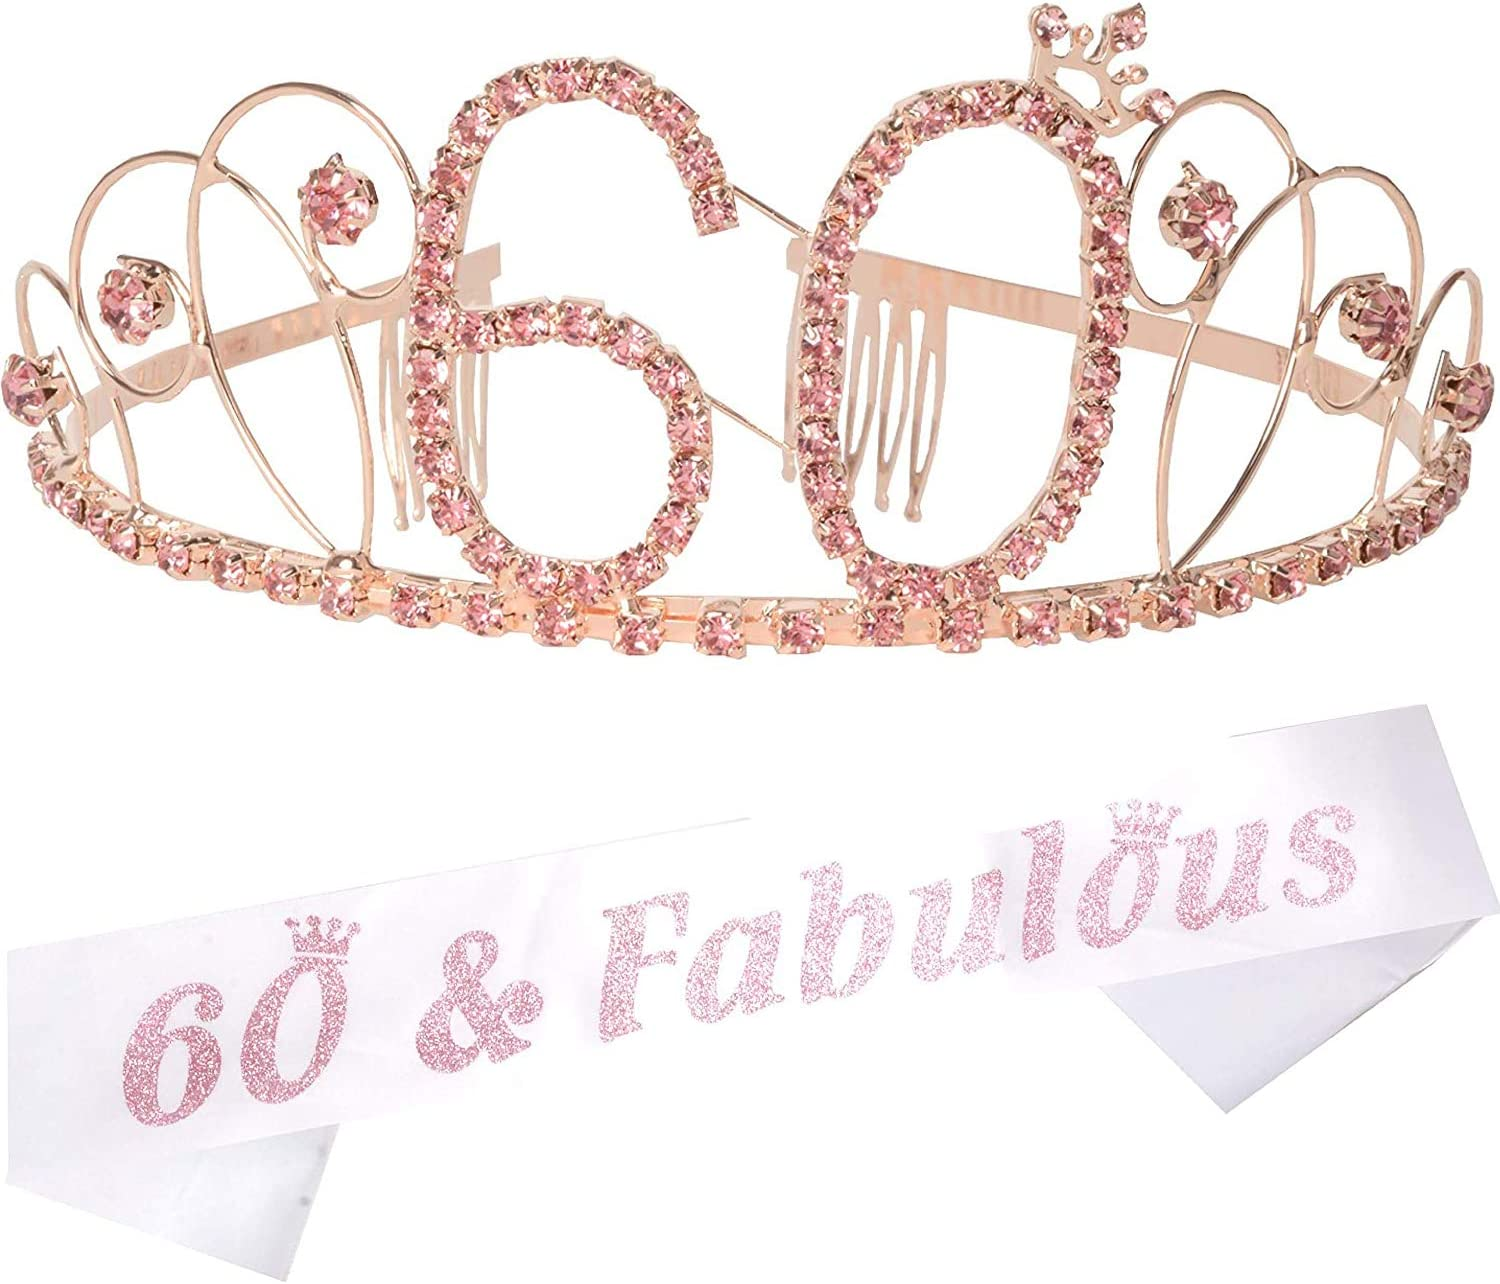 Qpout Glitter Rose Gold 60 Fabulous Sash 60 Birthday Sash-Birthday Gifts Bday Accessories with Diamond Pin Cheers to Sixty Years Birthday Party Favors Party Supplies Decoration for Woman Girls